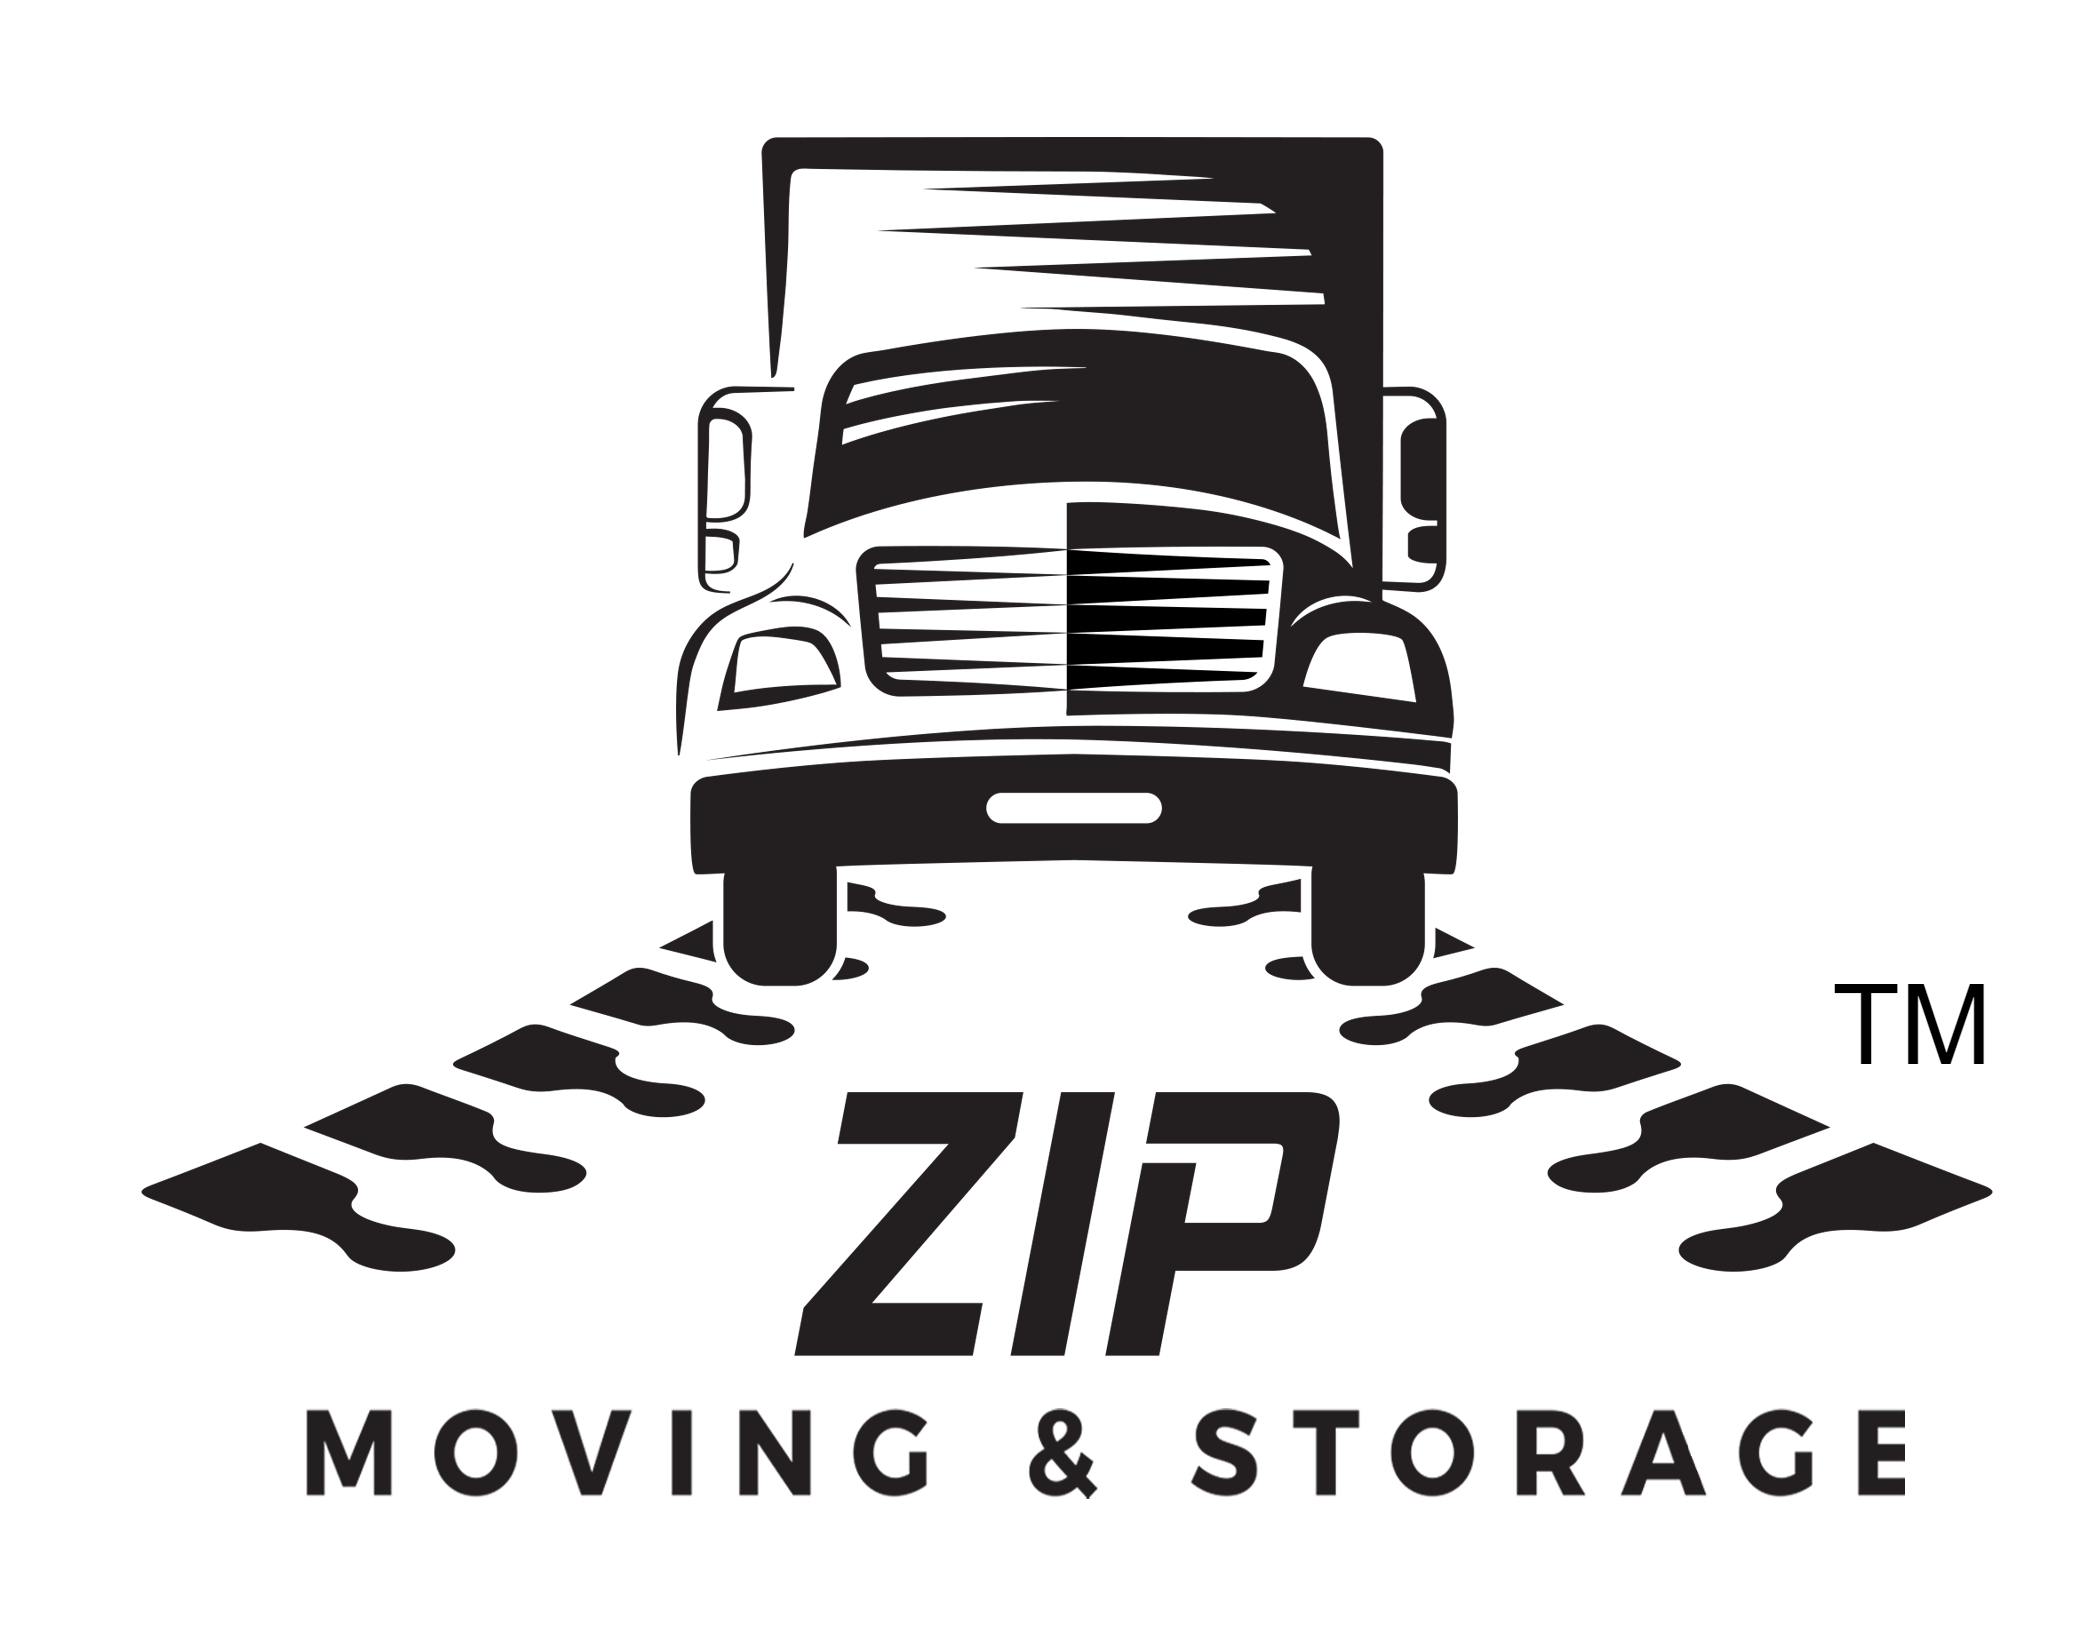 Zip Moving and Storage